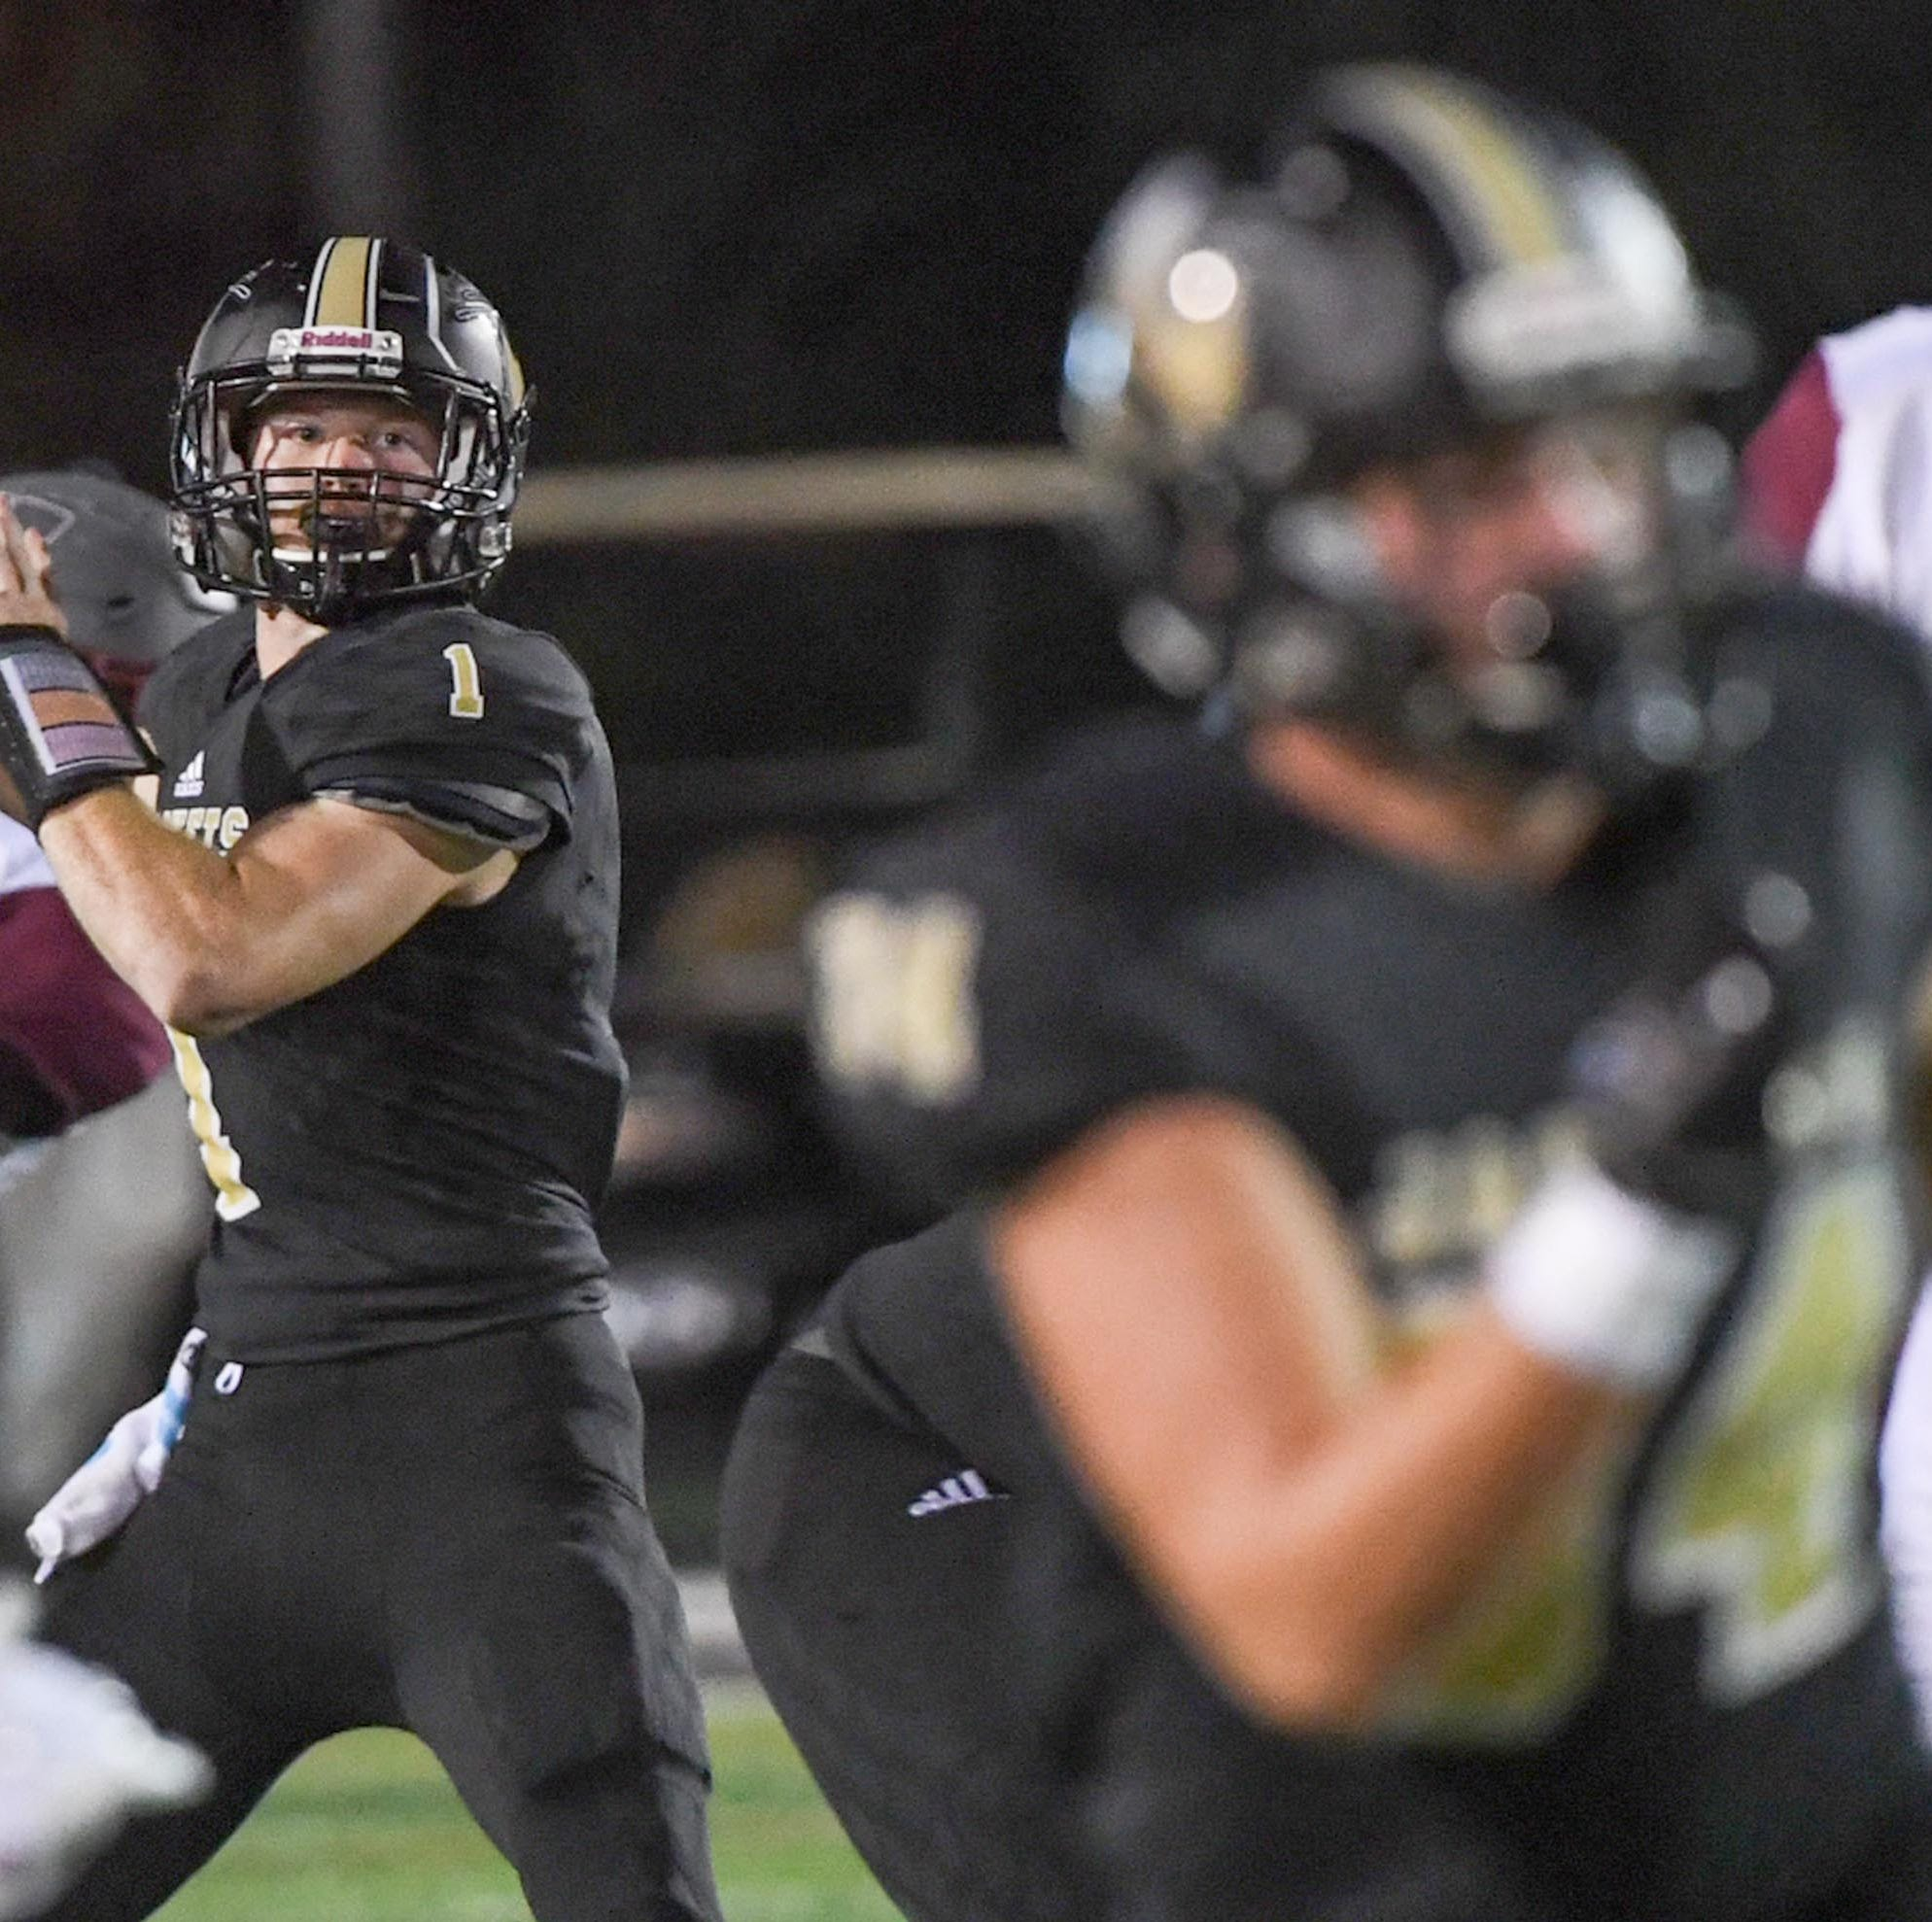 Vote now for Week 5 Independent Mail Athlete of the Week